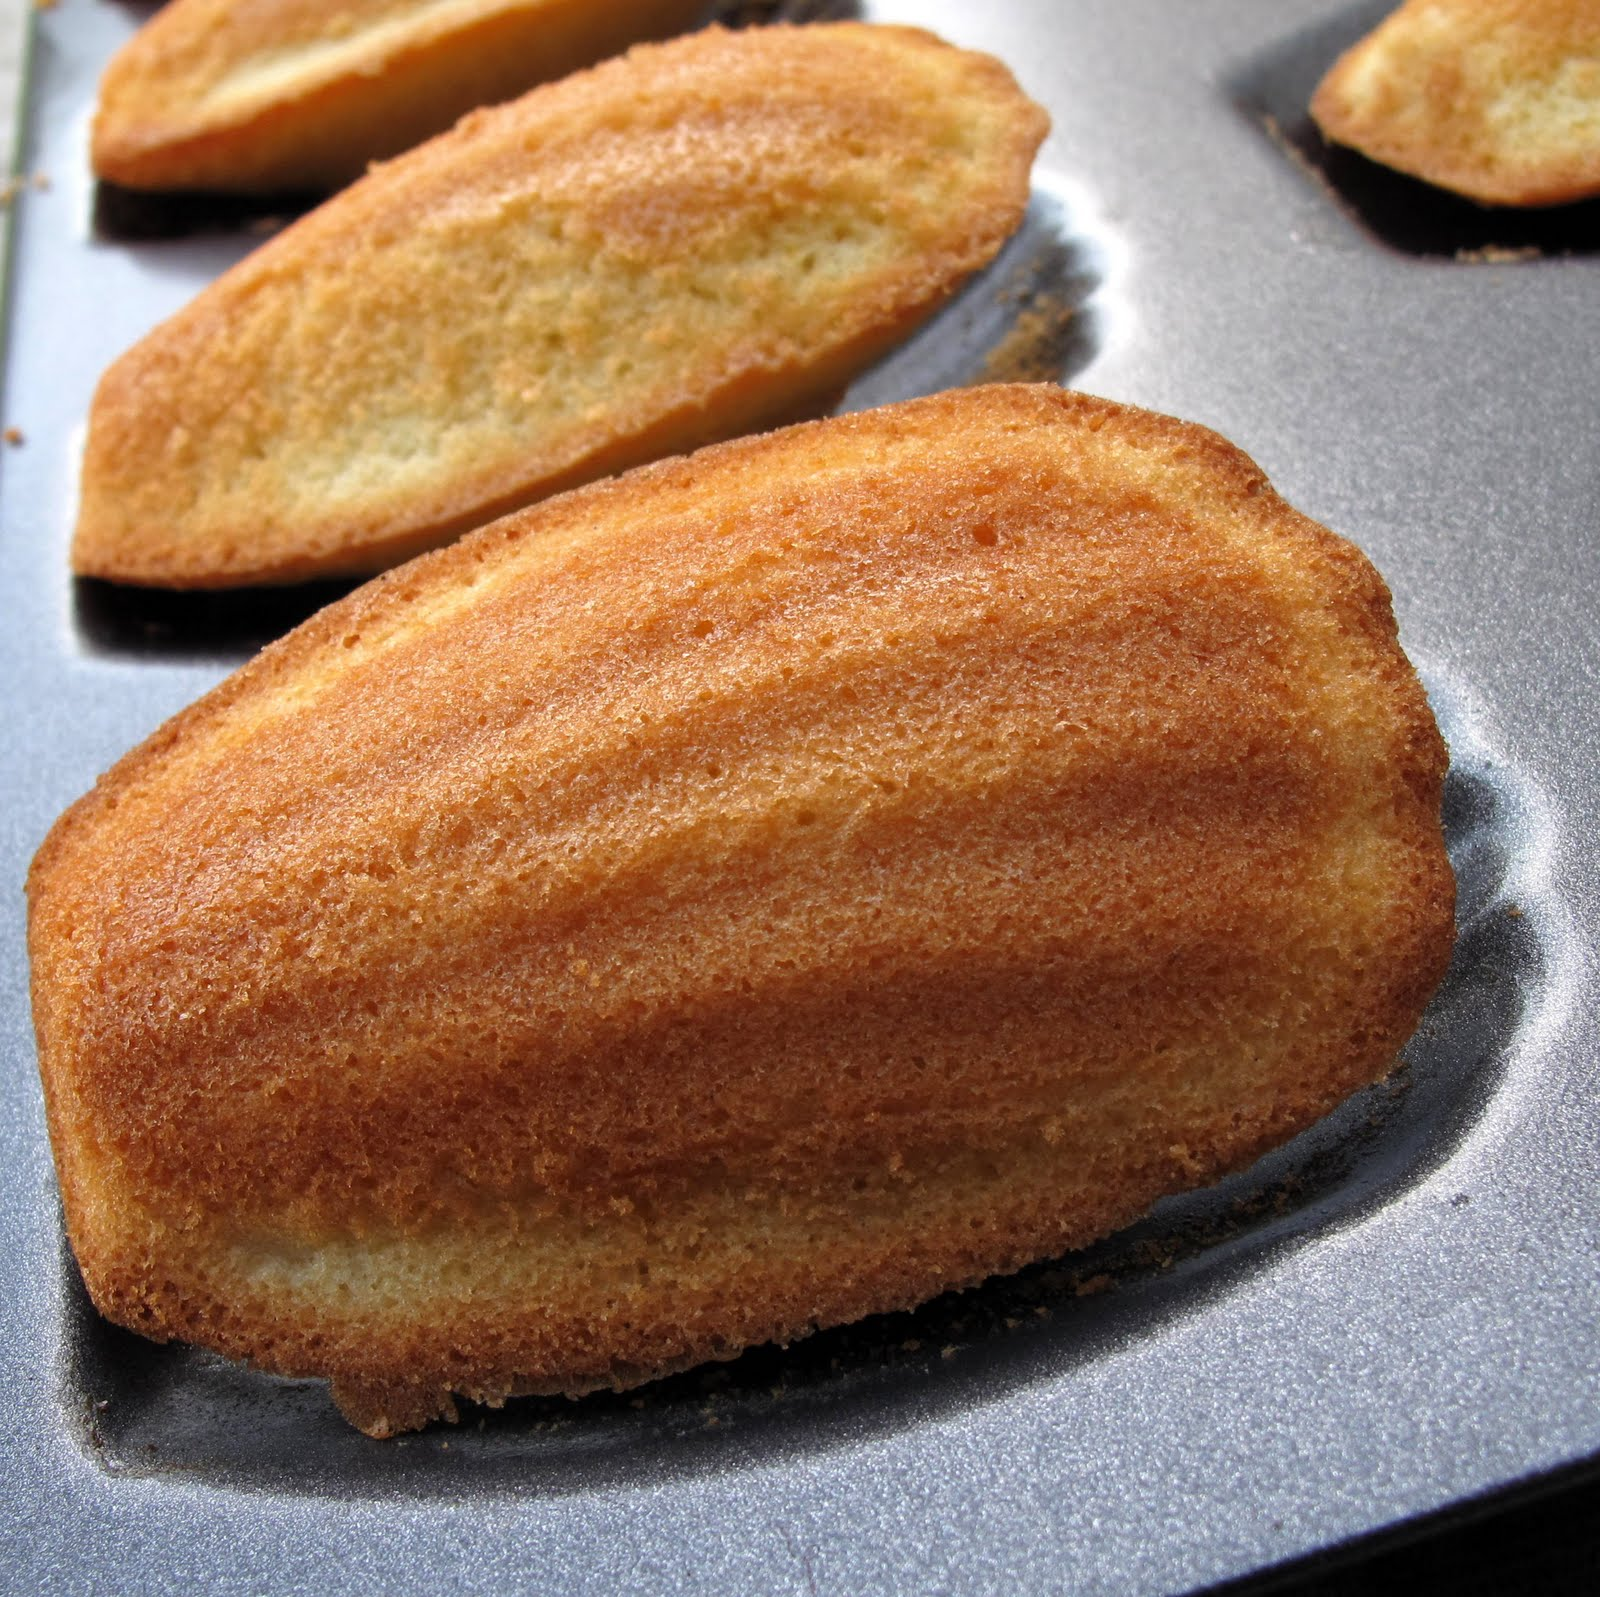 bakies: Lemon glazed madeleines